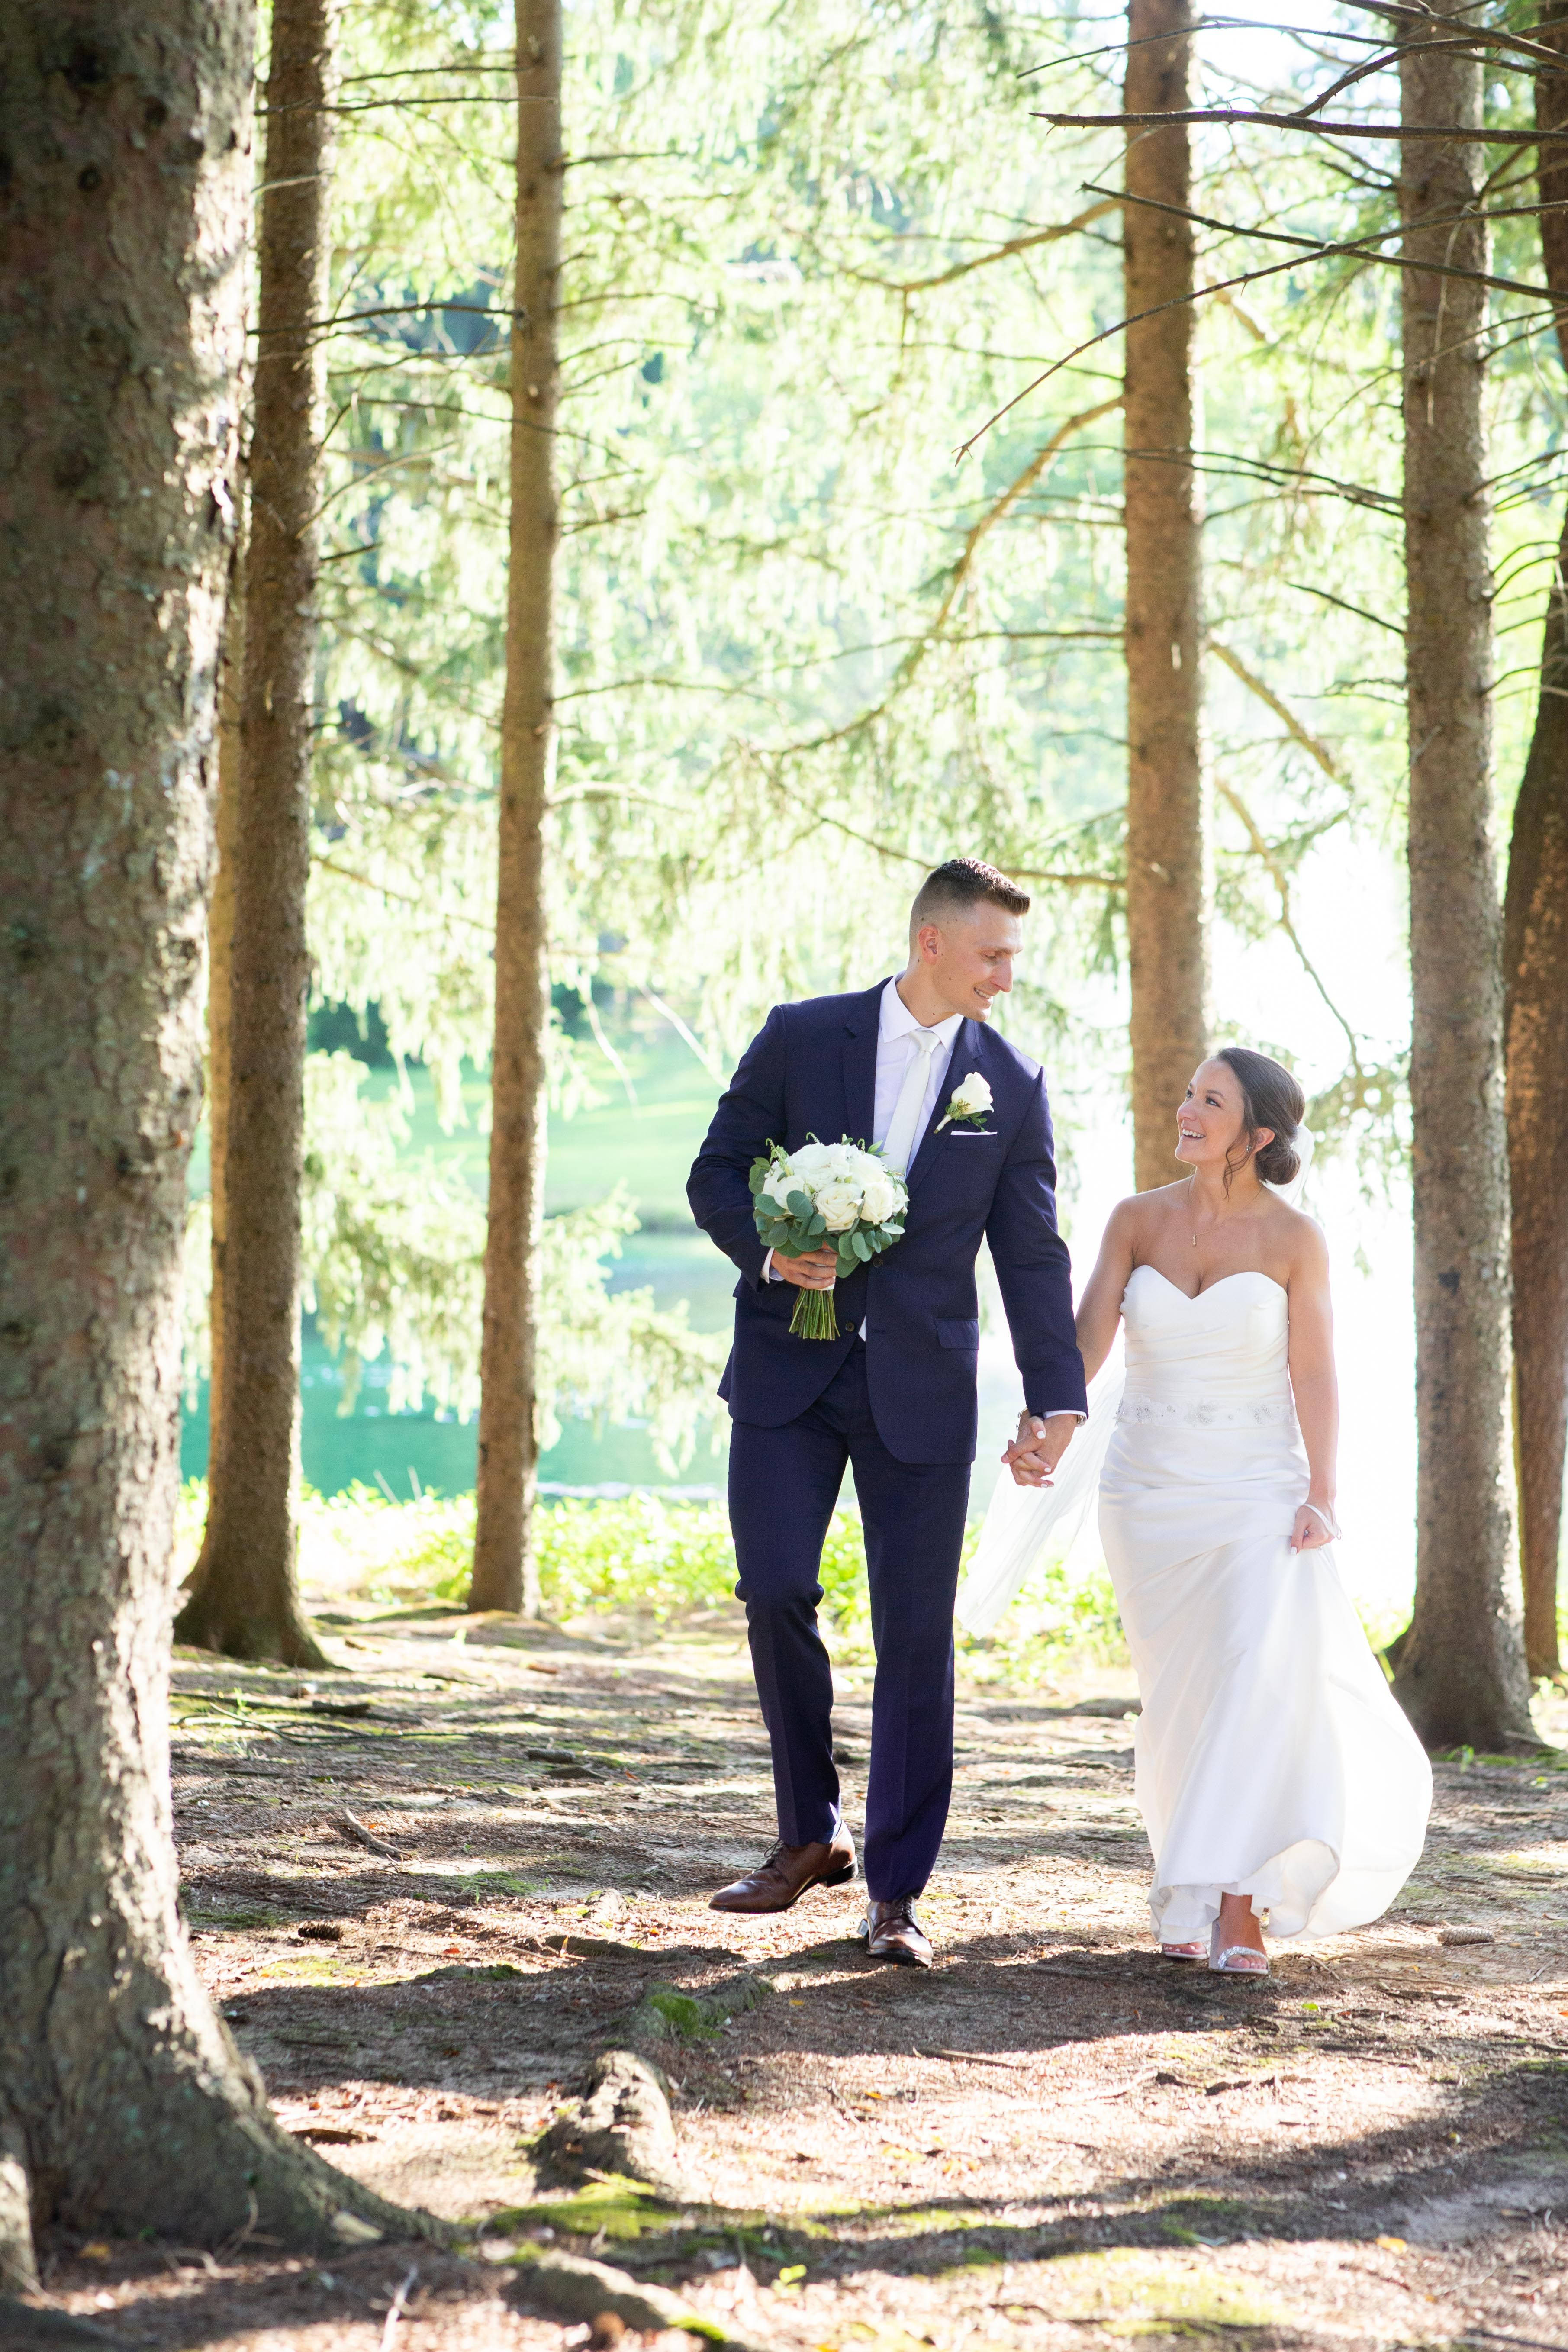 Best Wedding Venues in South Jersey | By Susan Hennessey ...